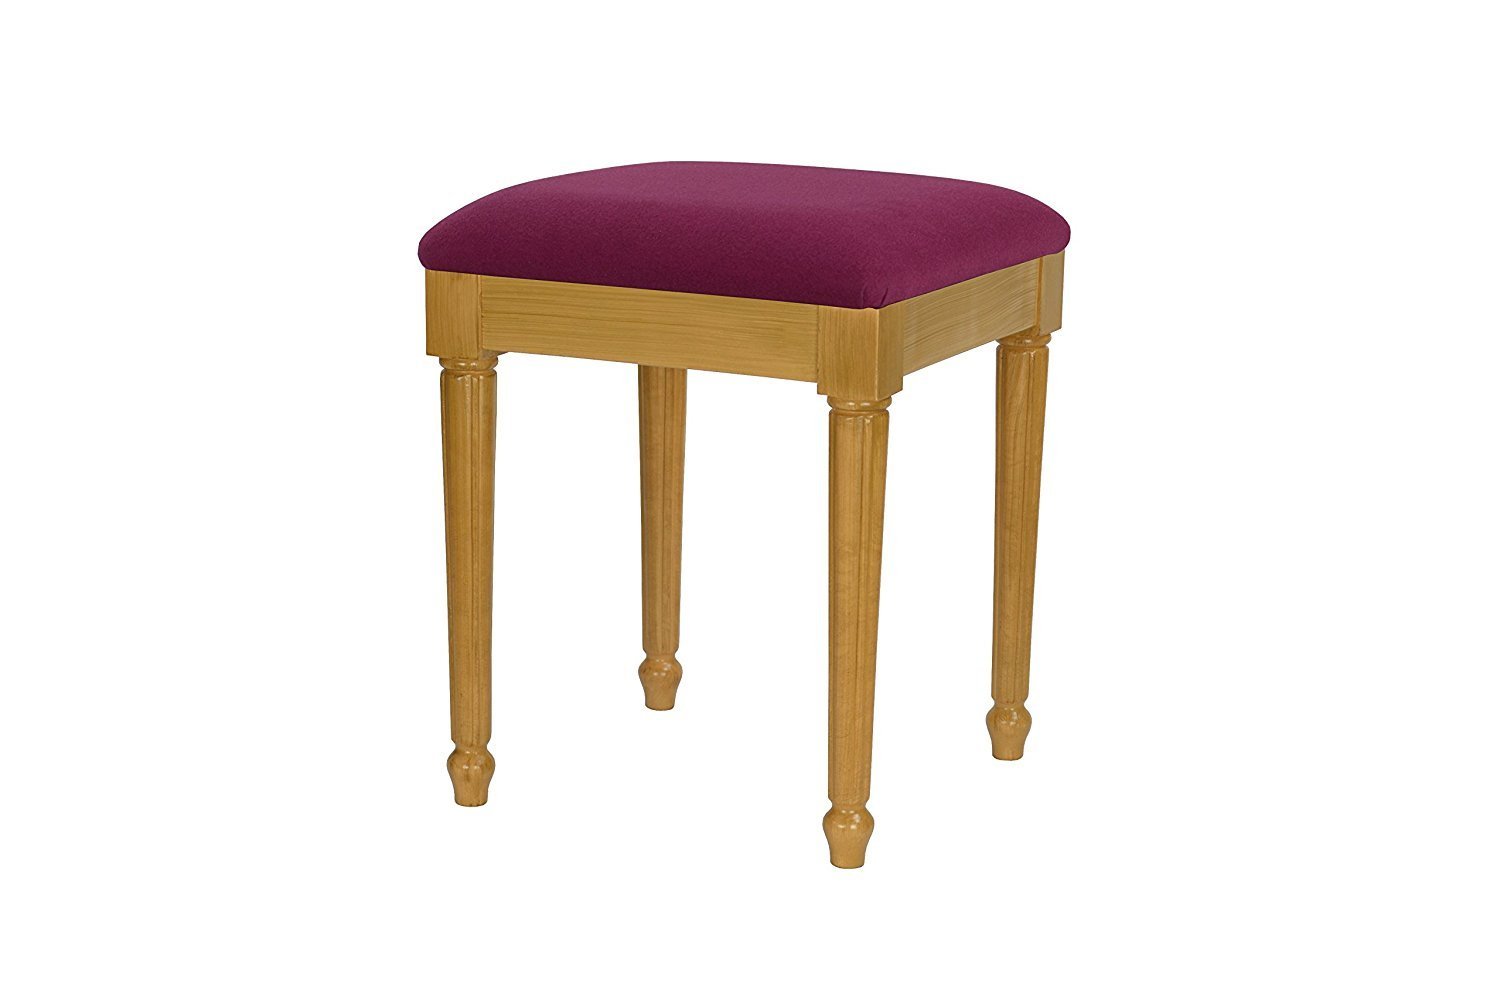 High Street Design Beech Grain Small dressing table/footstool with Fluted style legs and Cream Faux Leather Cushion 8717